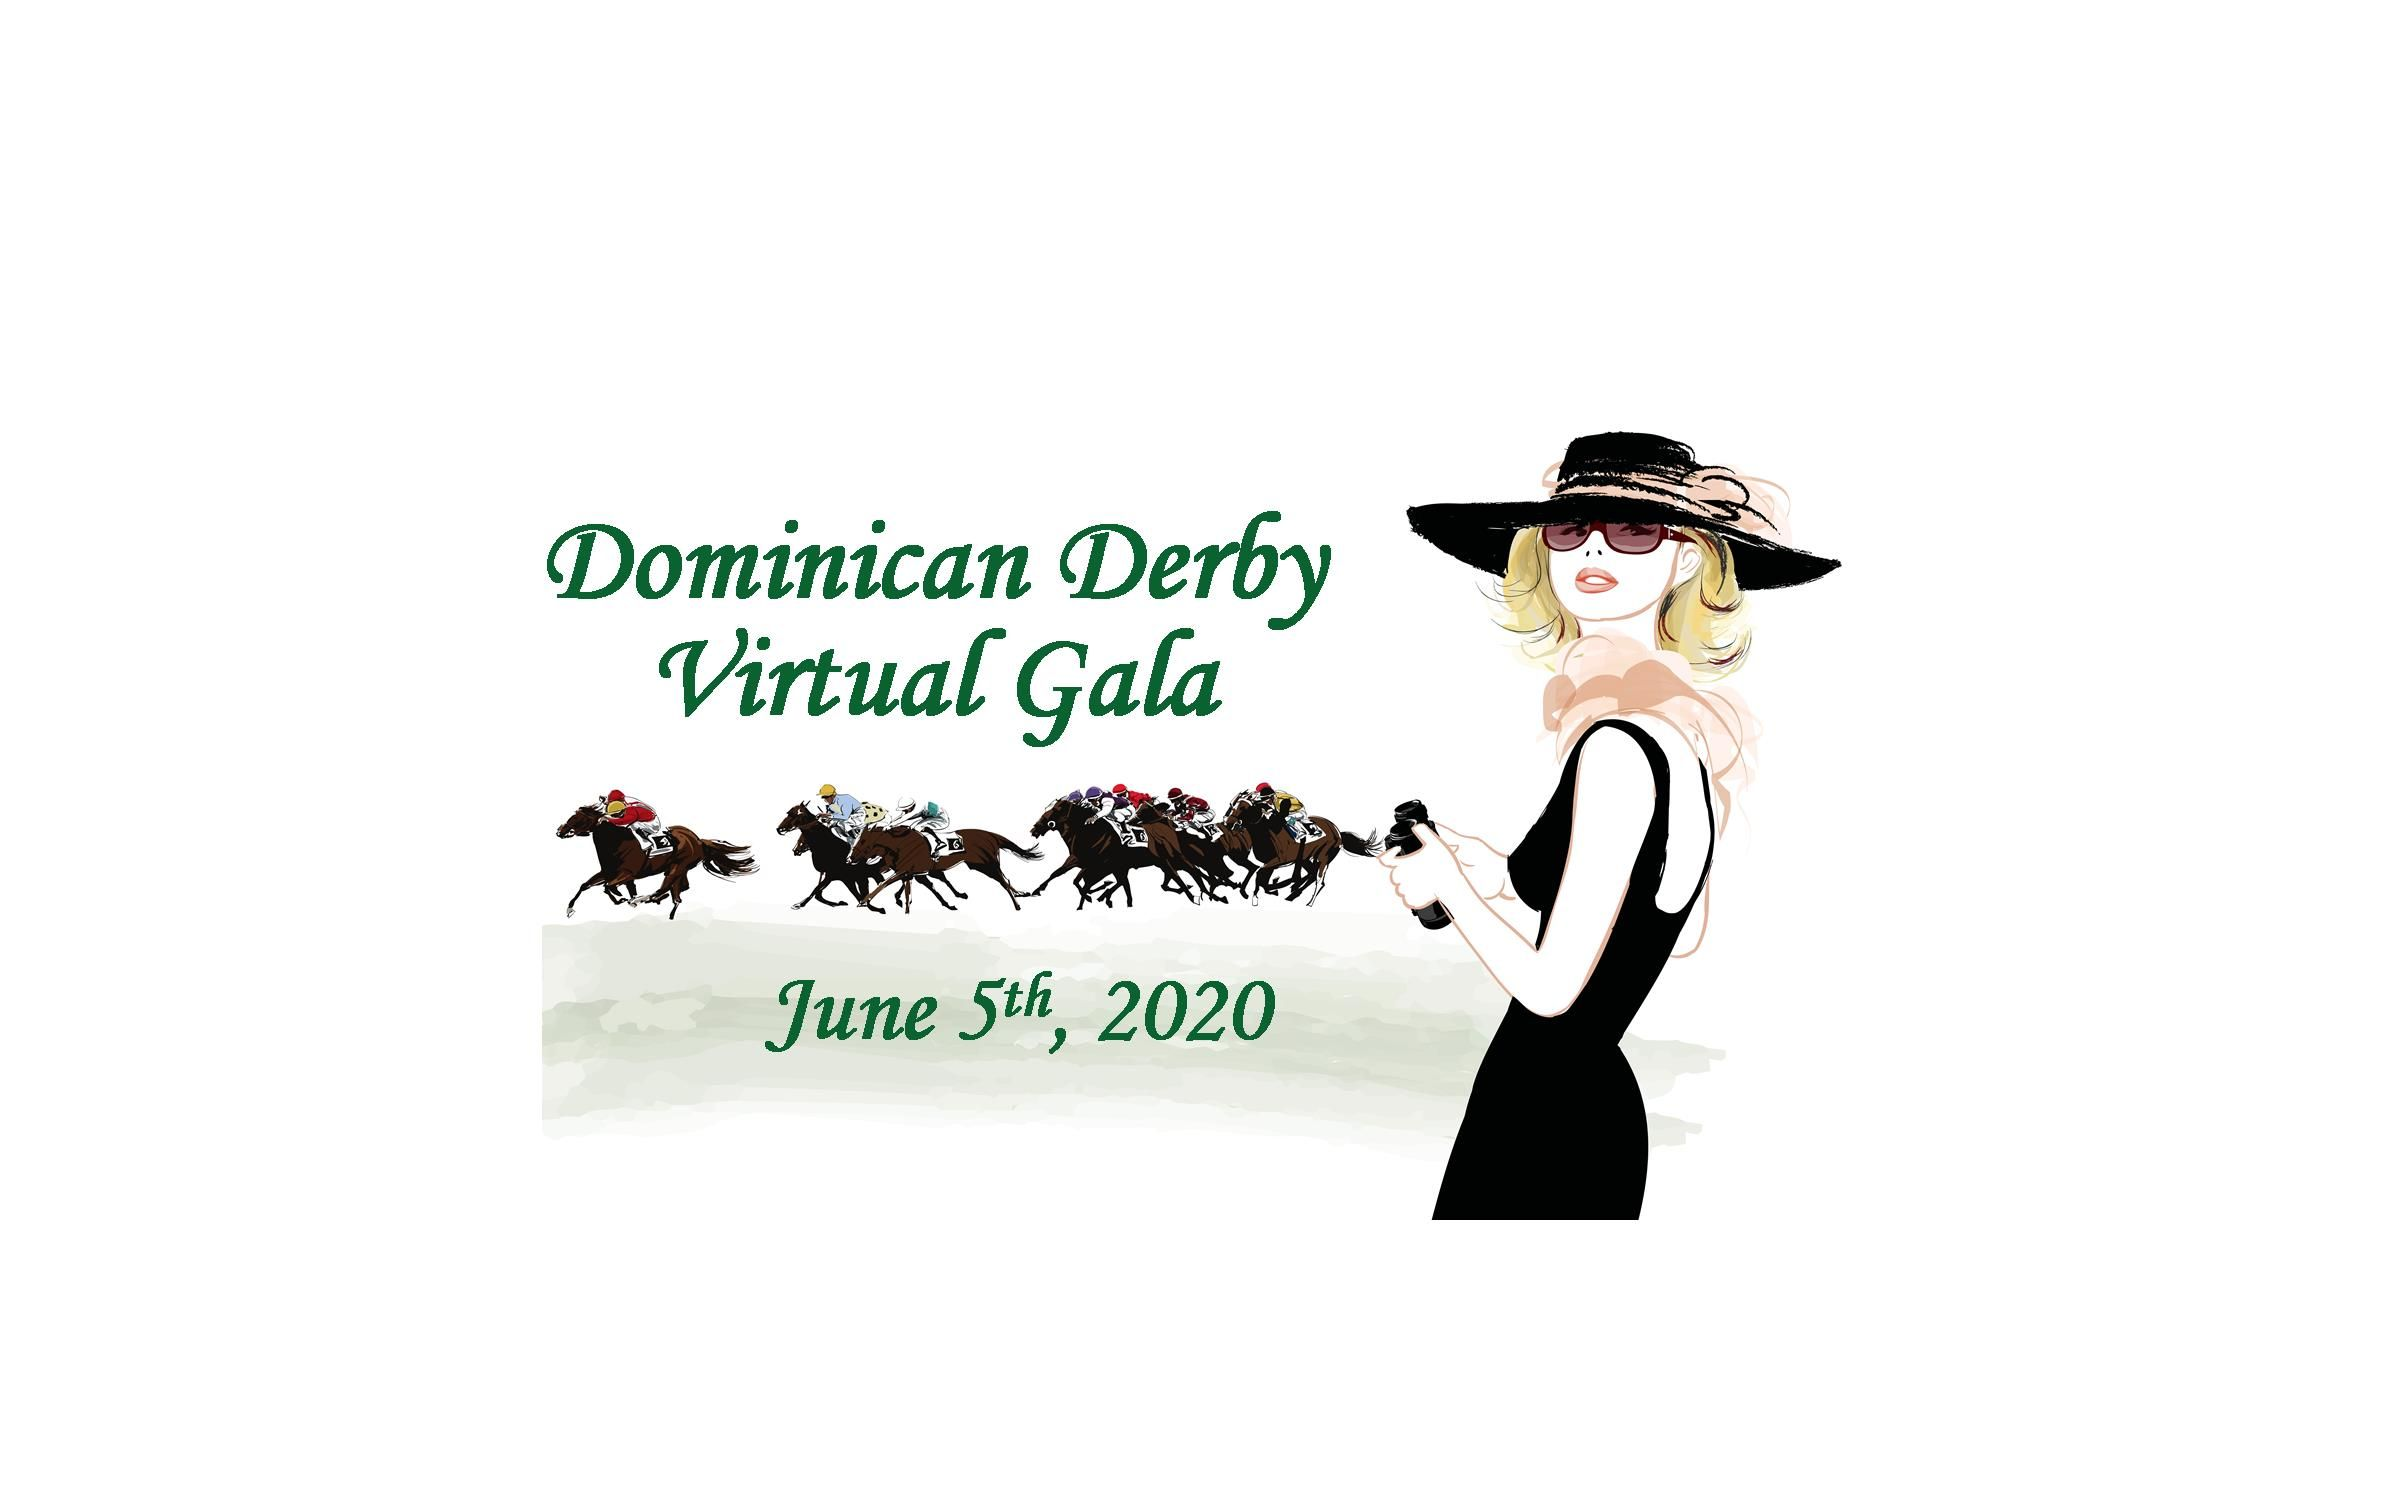 This Year's Dominican Derby is going VIRTUAL!